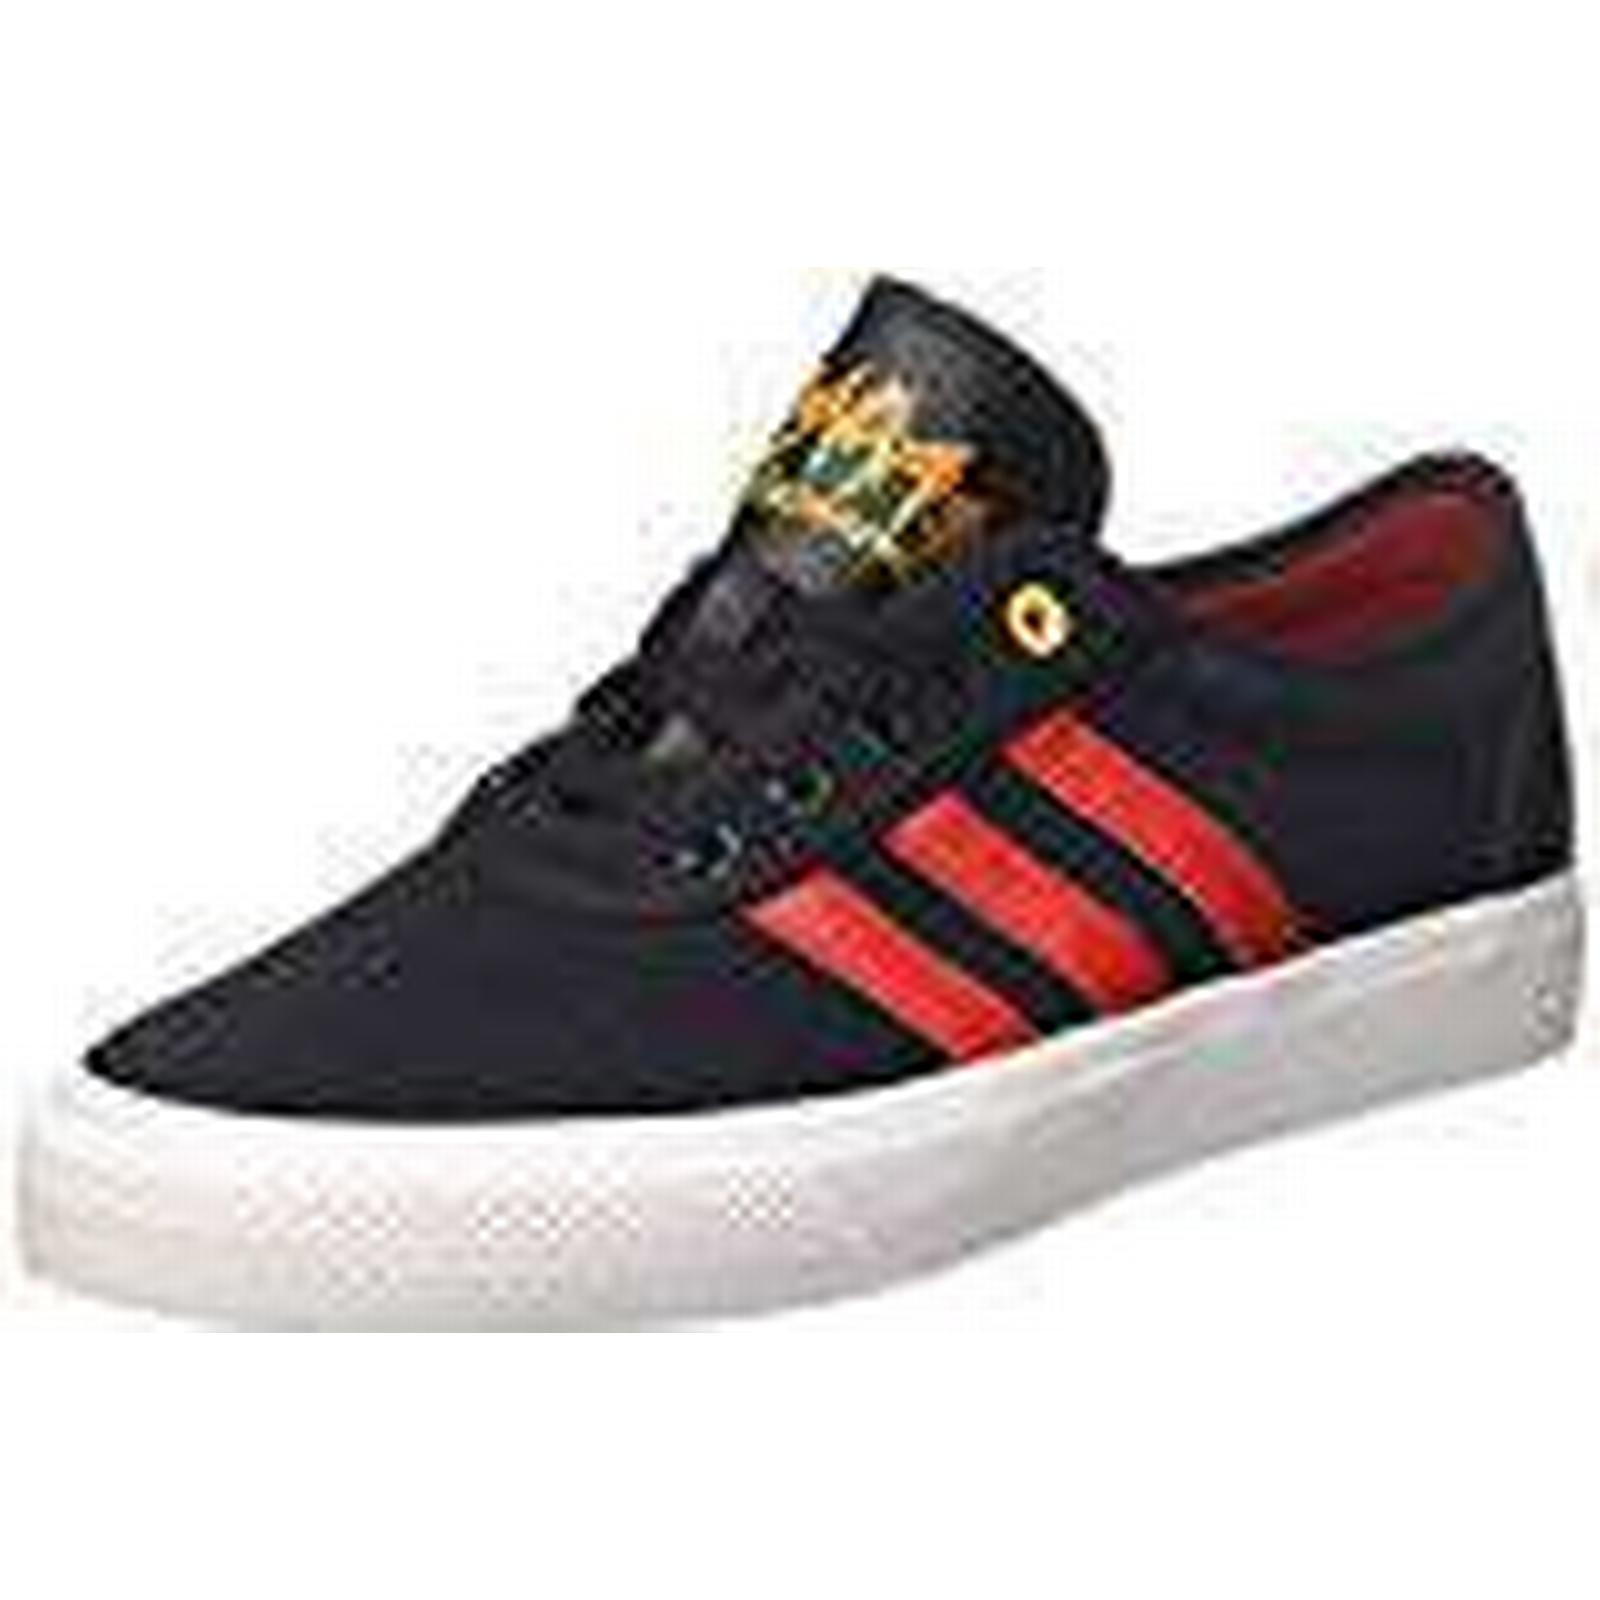 Adidas Men's Adi-Ease Skateboarding Shoes, 10.5 Black Cblack/Scarle/Ftwwht, 10.5 UK 10.5 Shoes, UK fb7c62